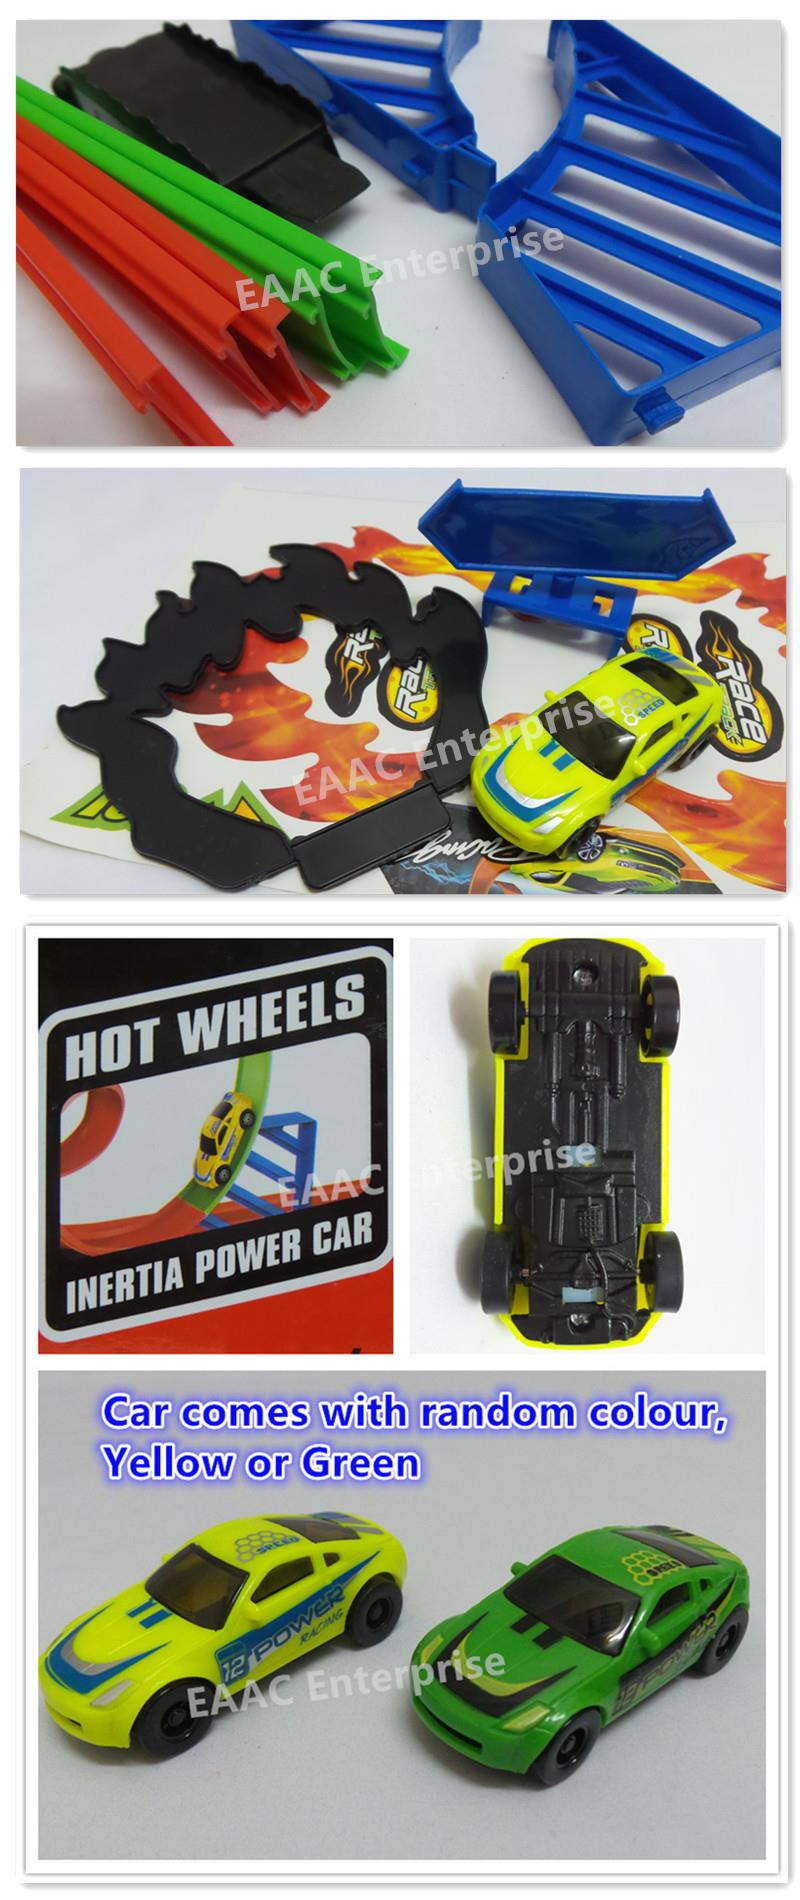 Hot Wheels 360 degree 4 Loop Powerful Spin Track + A Inertia Power Car